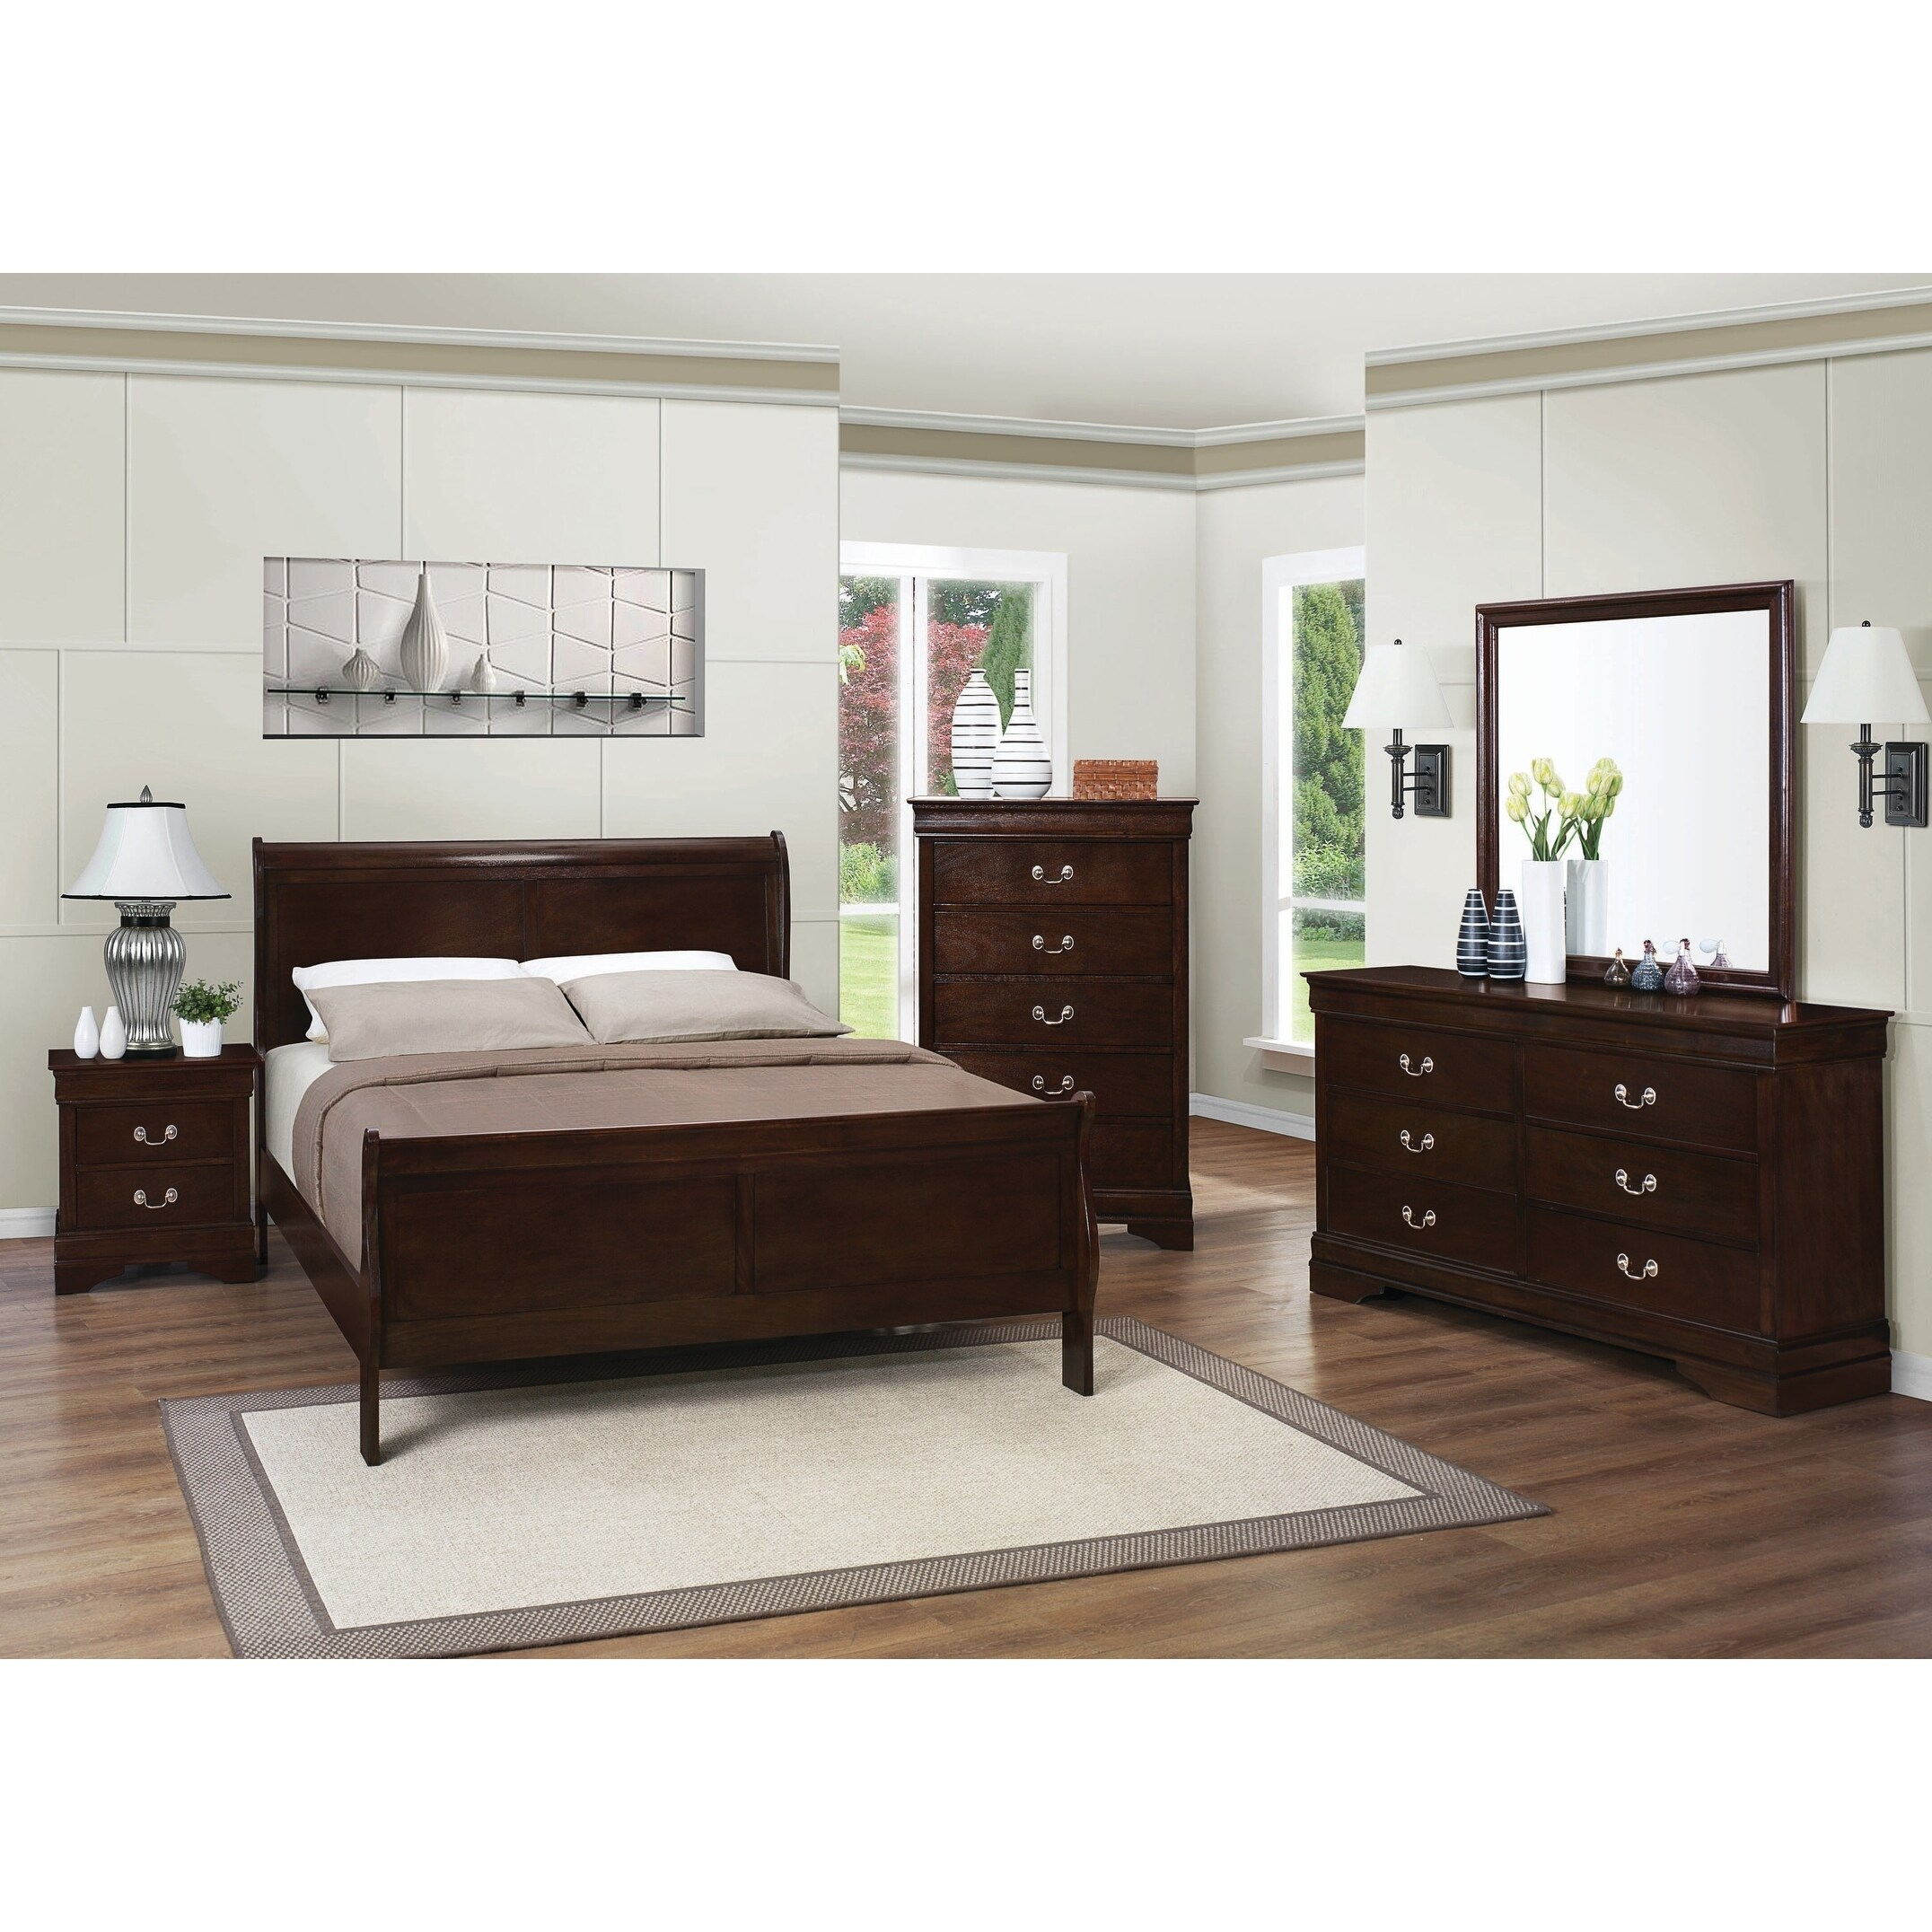 Buy Full Size Bedroom Sets Online at Overstock com   Our Best     Louis Philippe Warm Brown 4 piece Bedroom Set